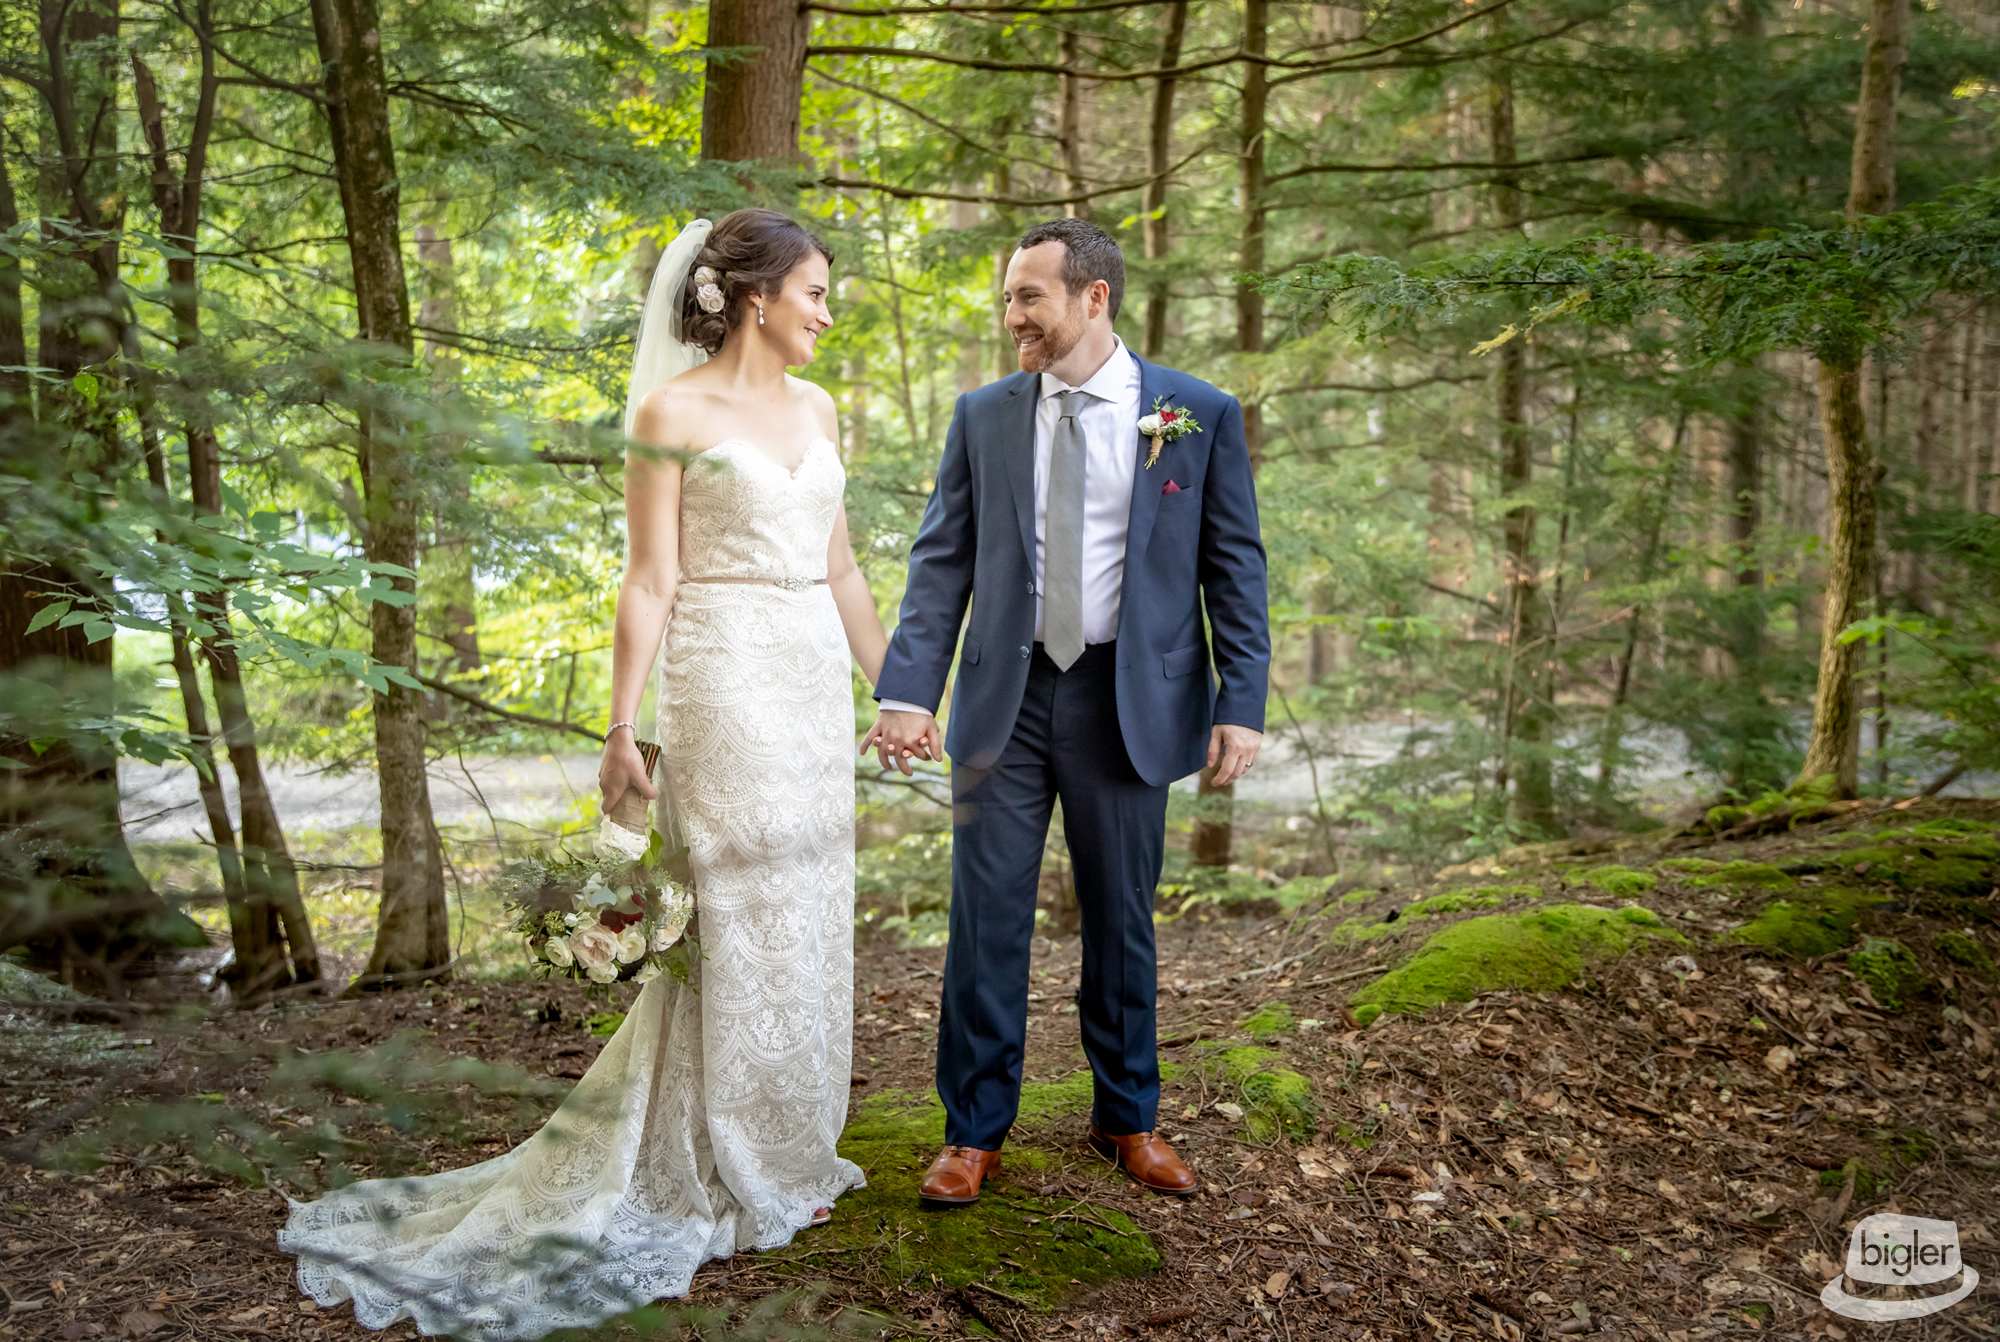 20180914_-_22_-_Jess_and_Aram_Greywacke_Meadows_Wedding